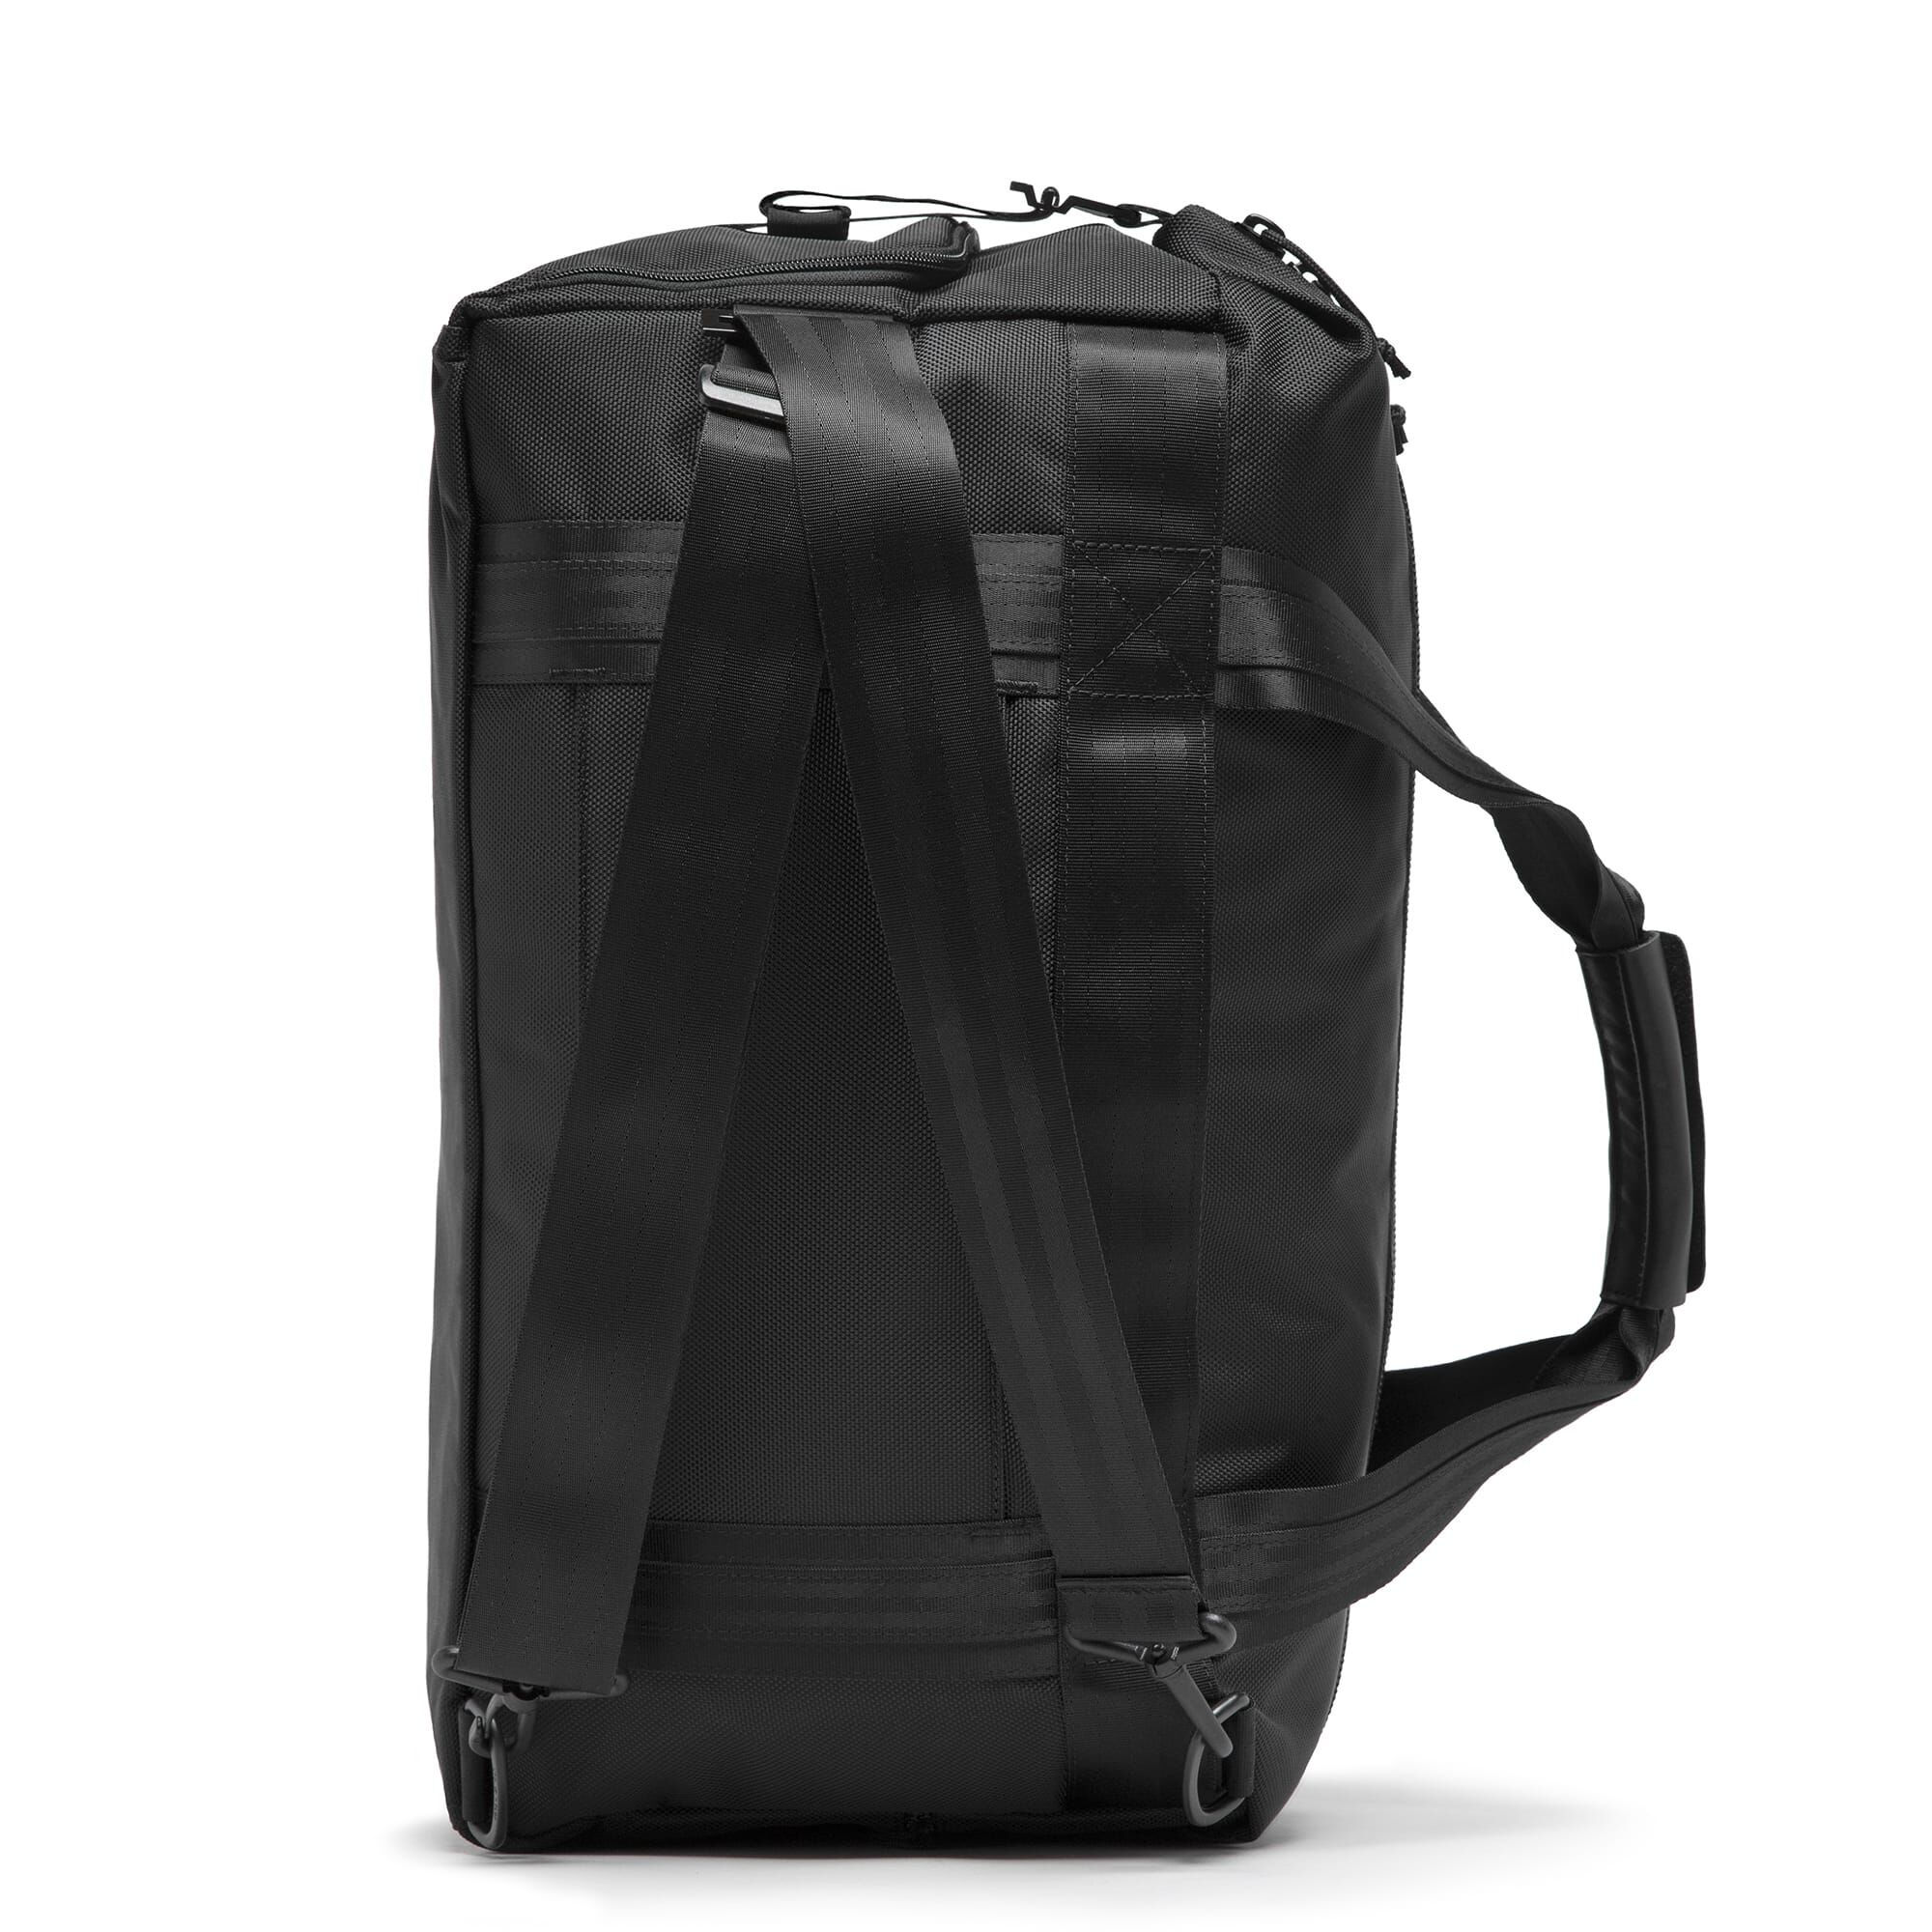 Surveyor Duffle Bag In All Black Small View